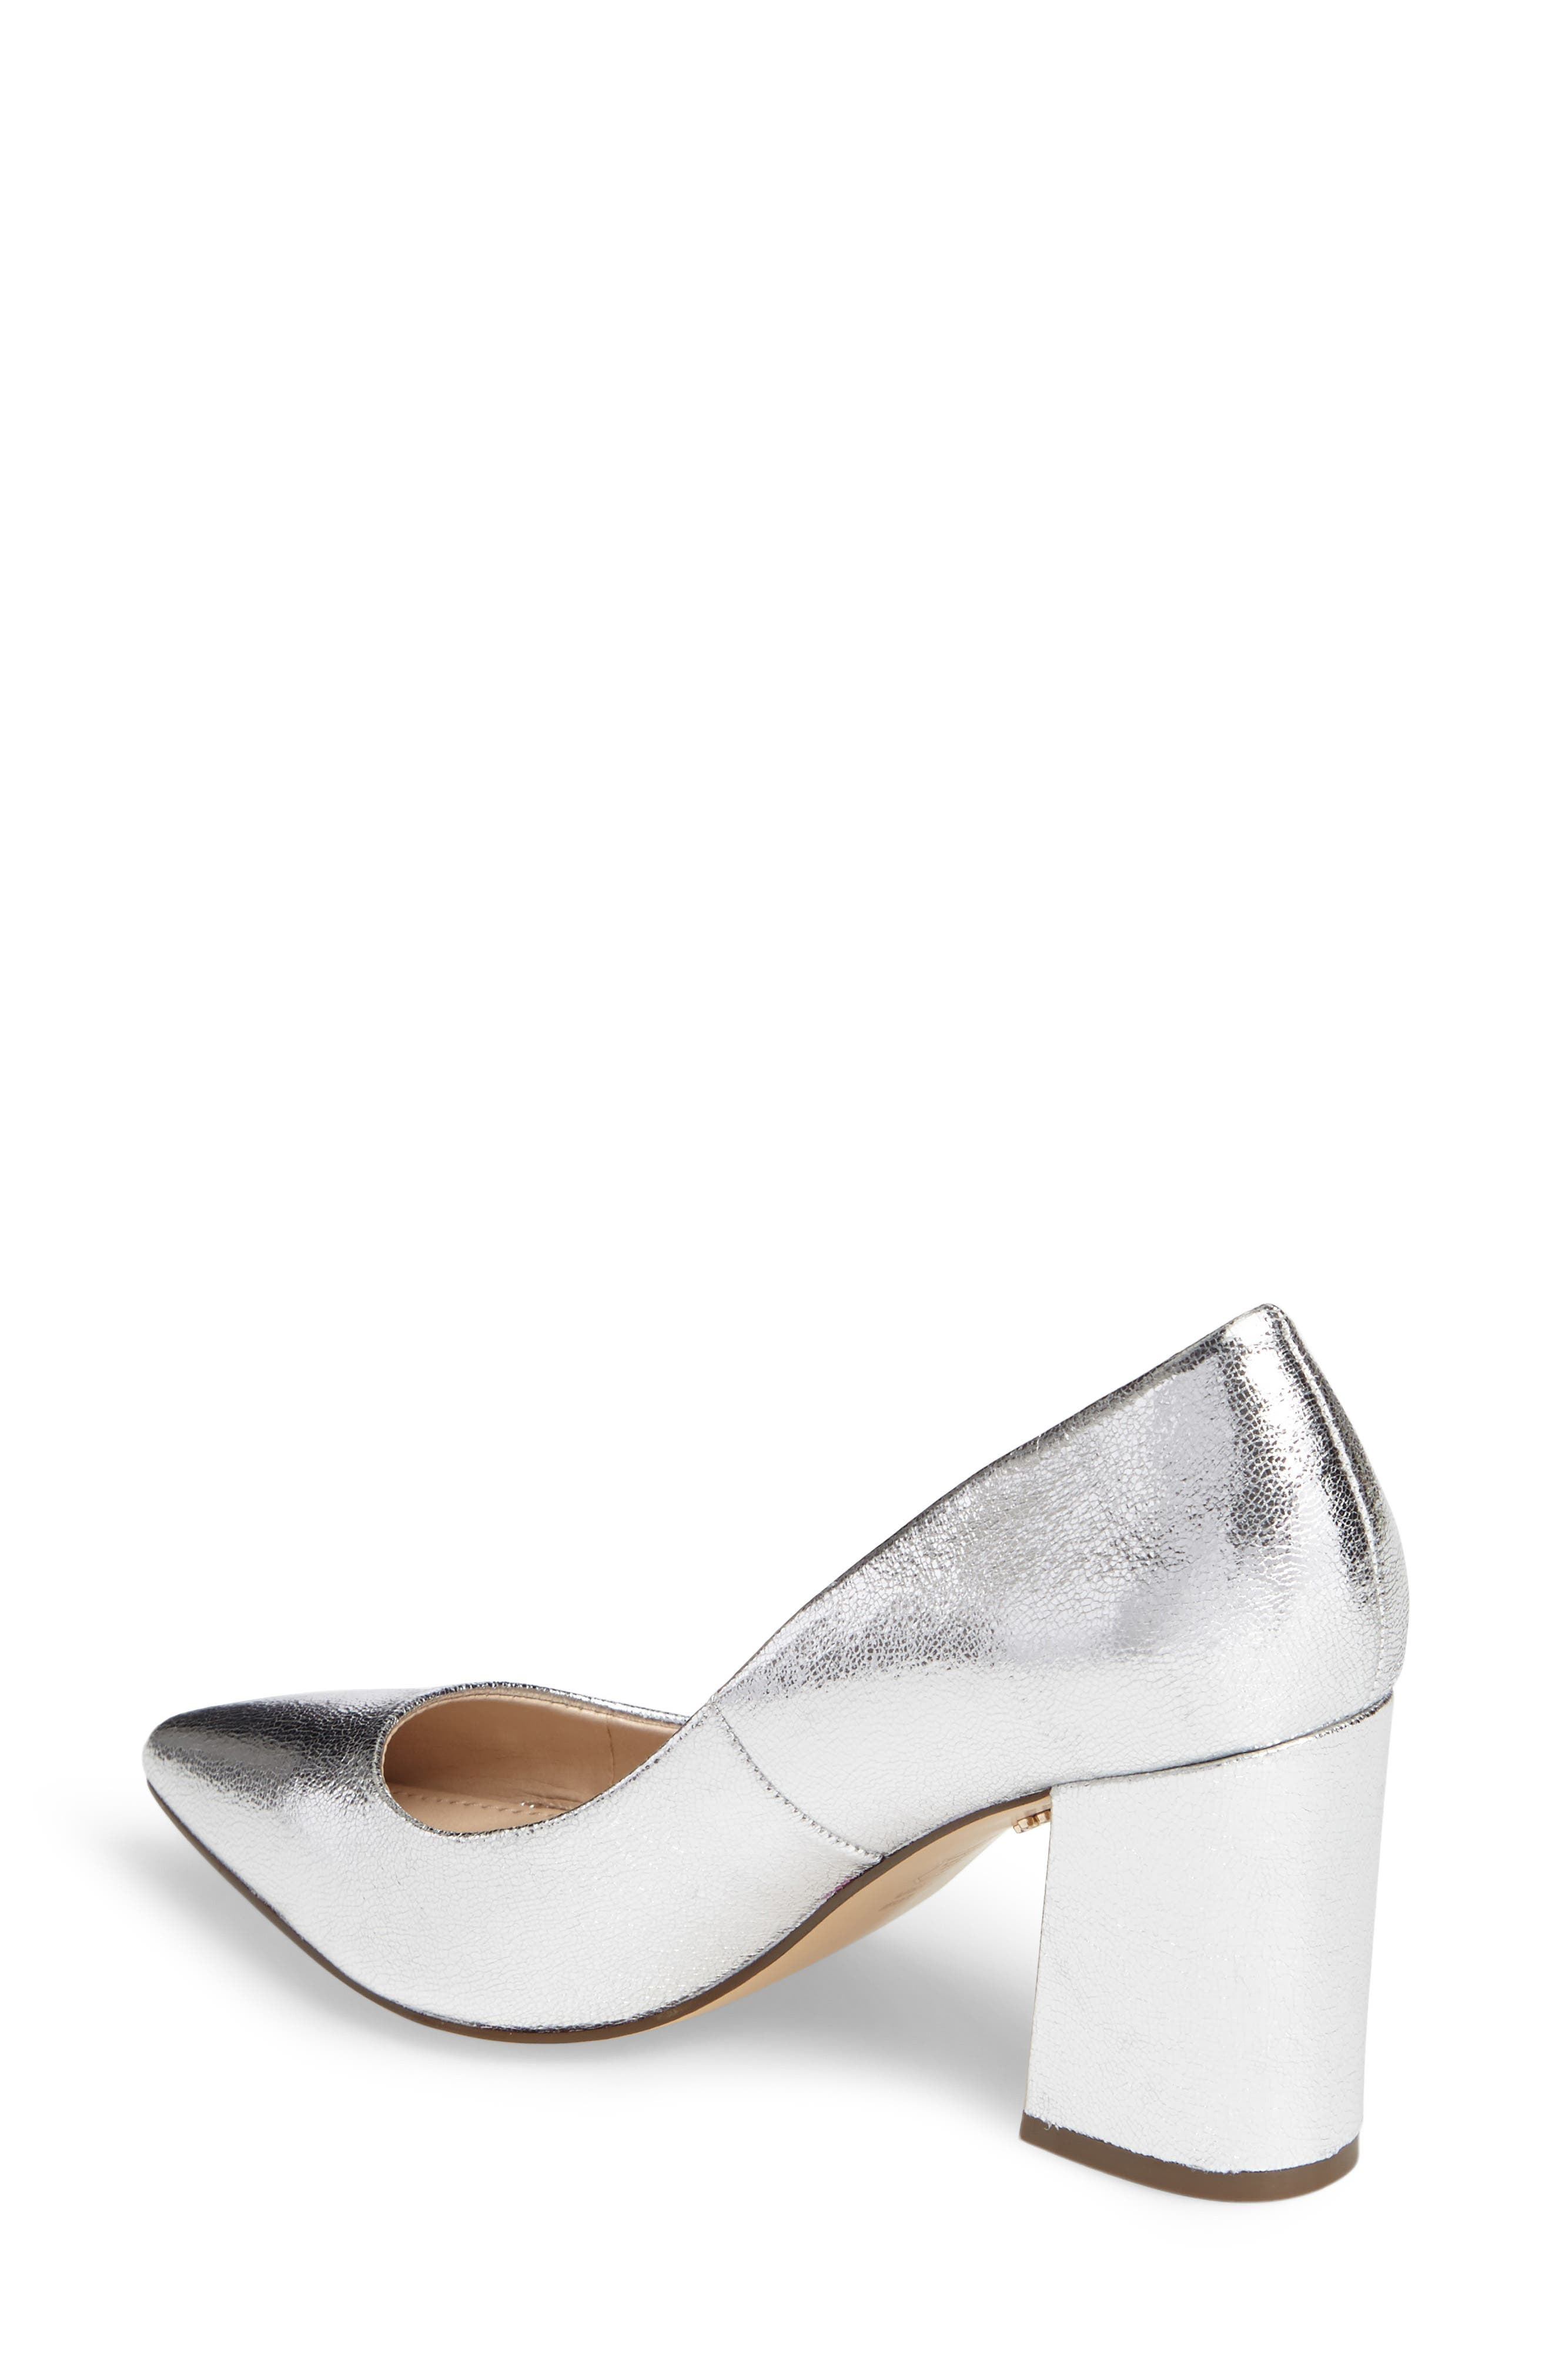 Tinsley Pointy Toe Pump,                             Alternate thumbnail 6, color,